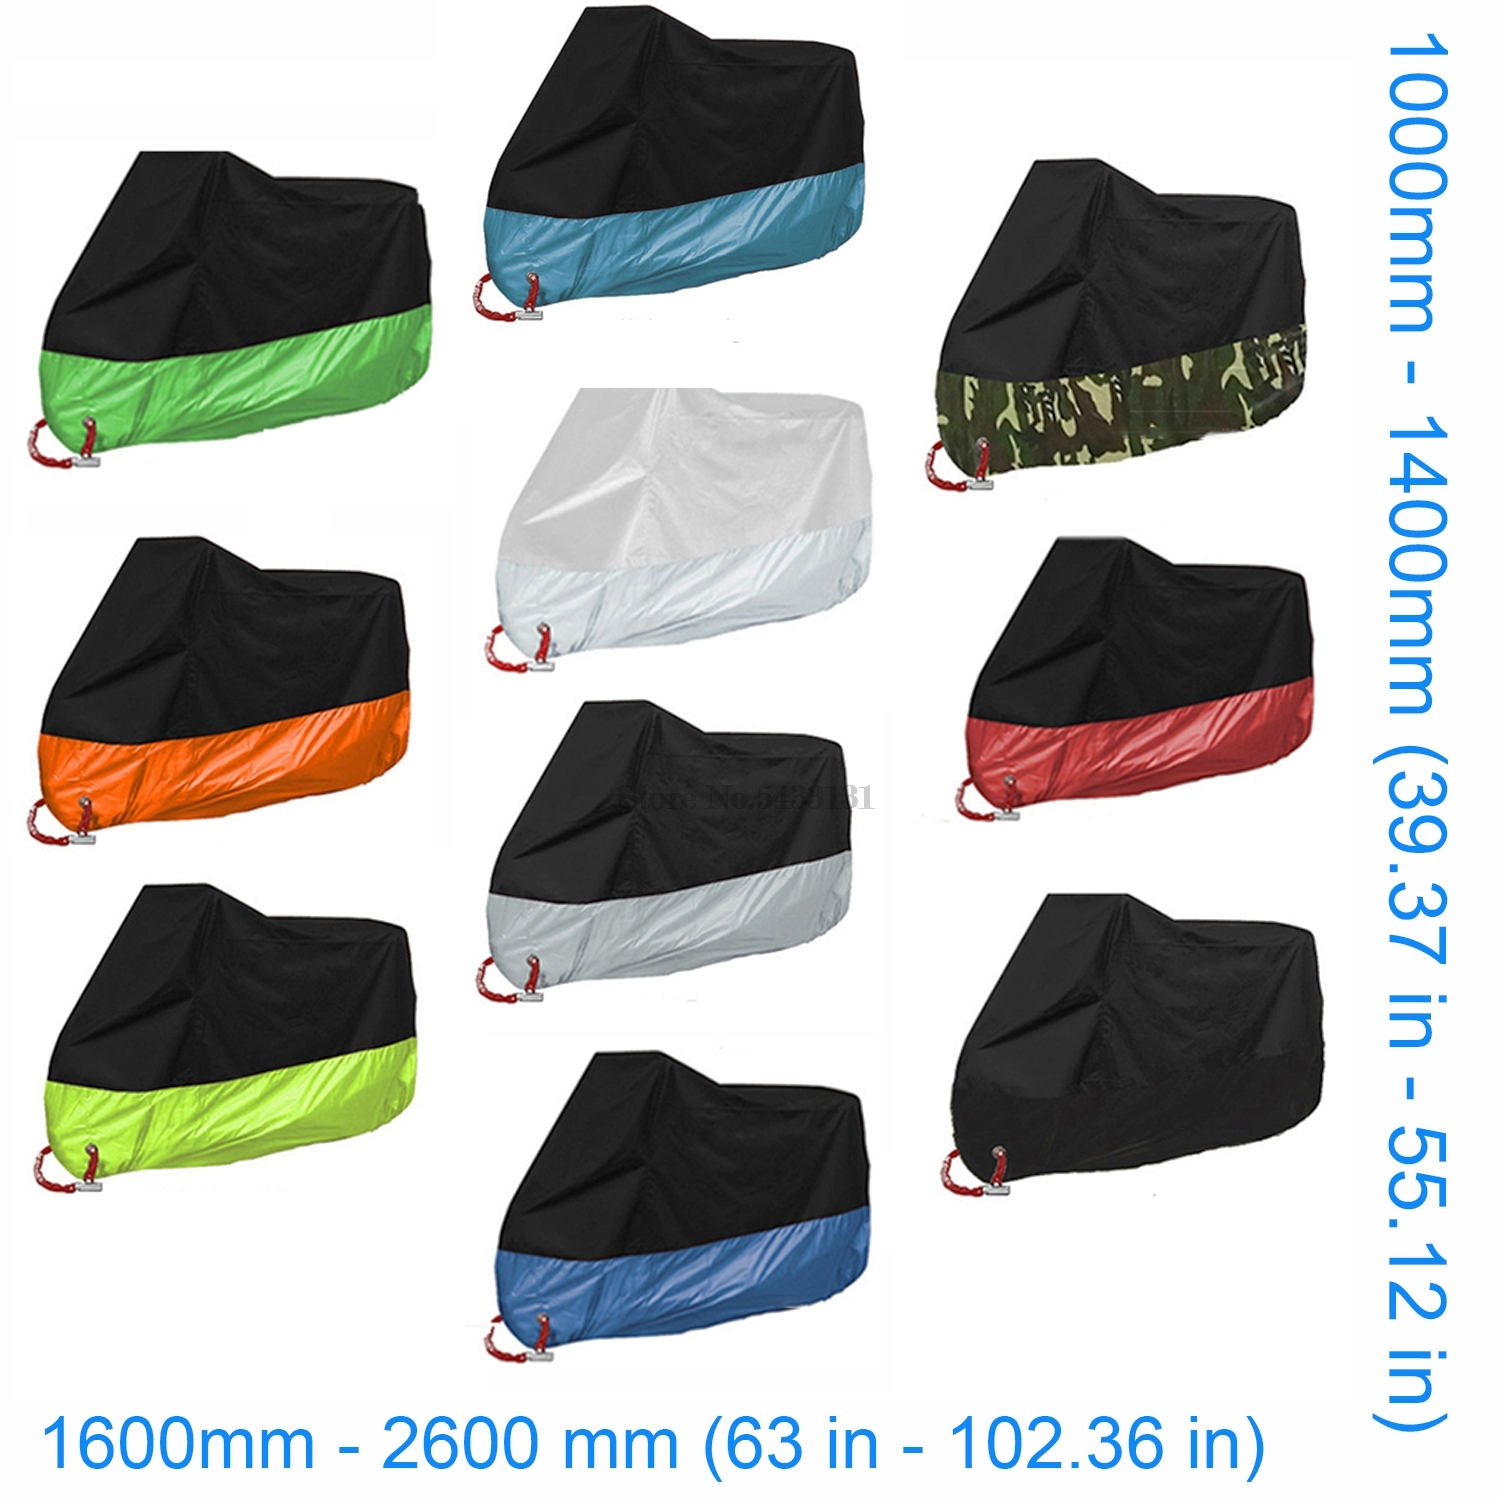 Motorcycle cover UV anti funda for 400 Ducati 899 <font><b>Kx</b></font> 250 Africa Twin 750 Gas Gas Ec Bmw K1300R Yamaha Xt <font><b>125</b></font> Kawasaki <font><b>Parts</b></font> Lap image